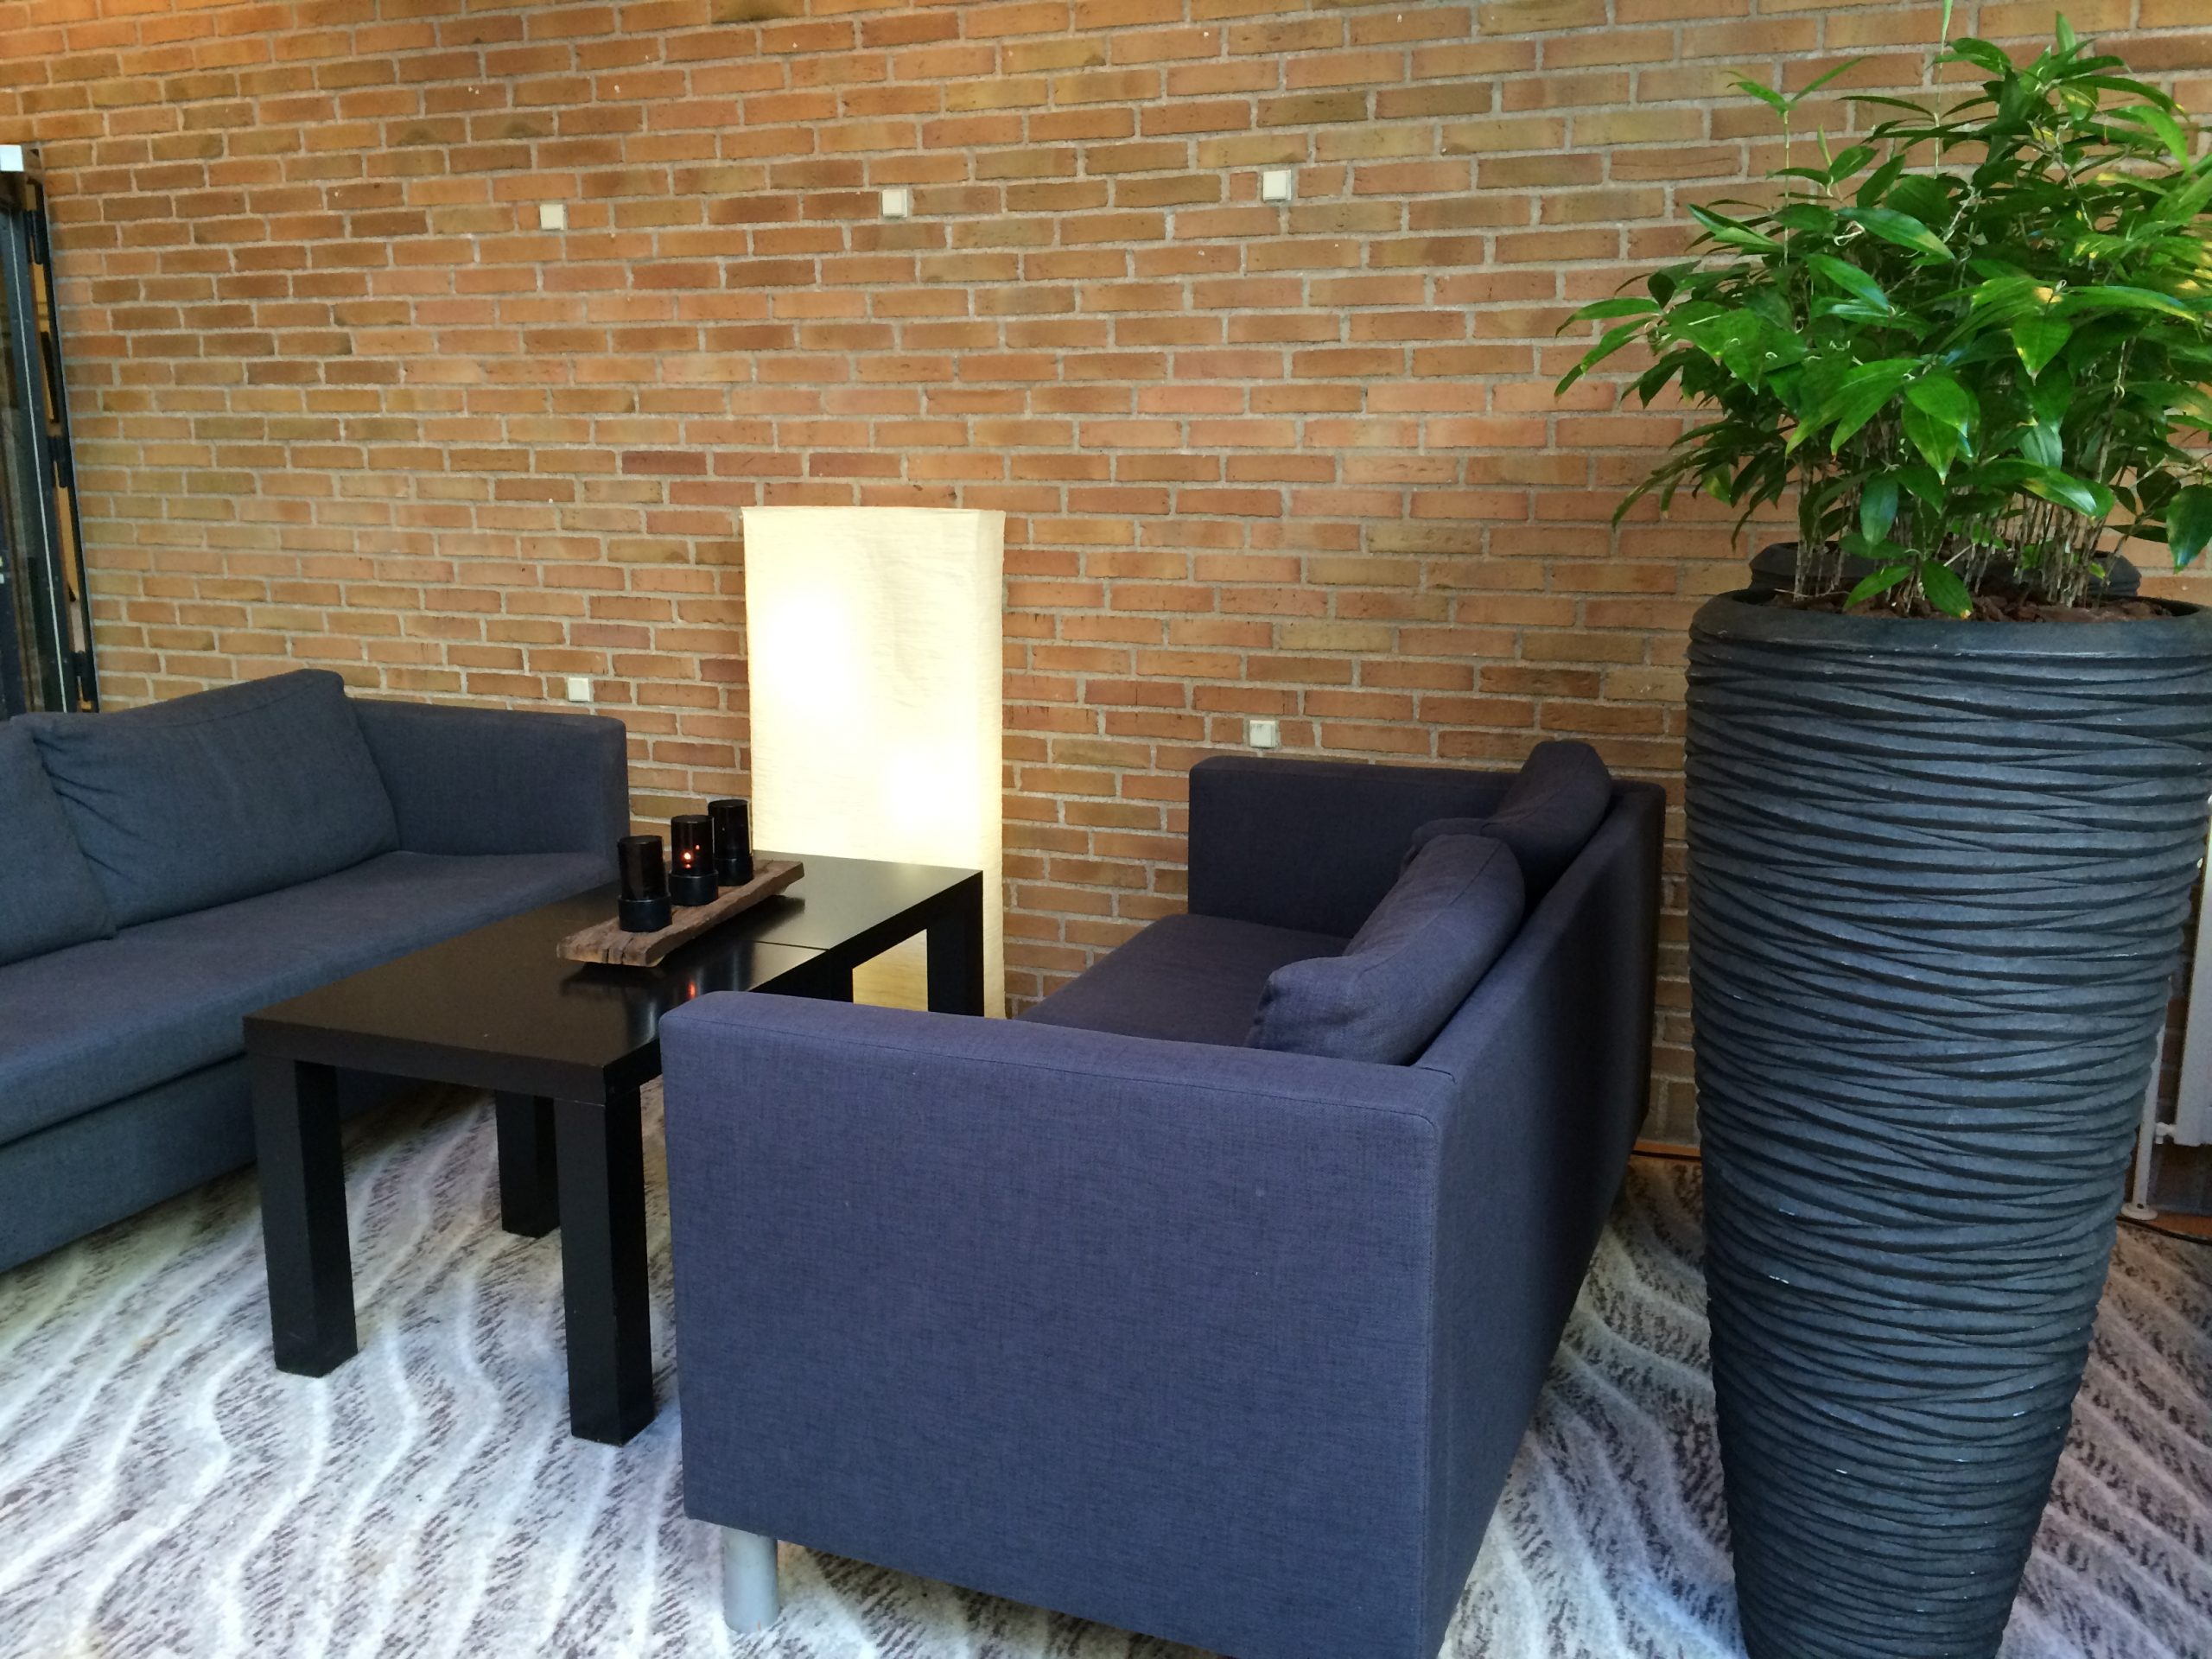 Meetings unplugged: Chill zones